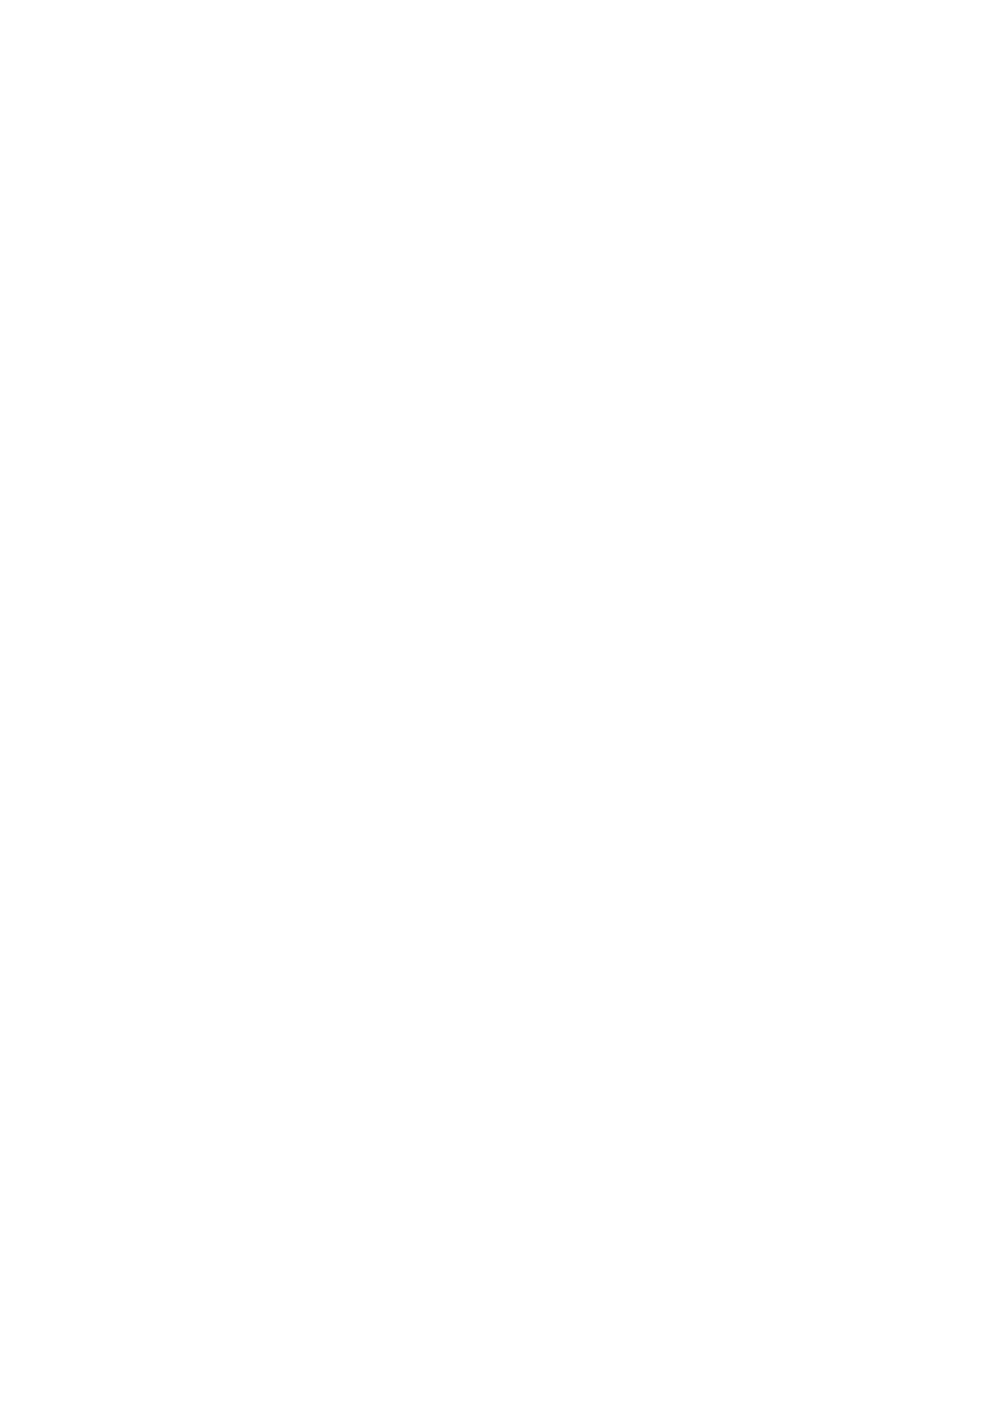 graphic design-reindeer.png